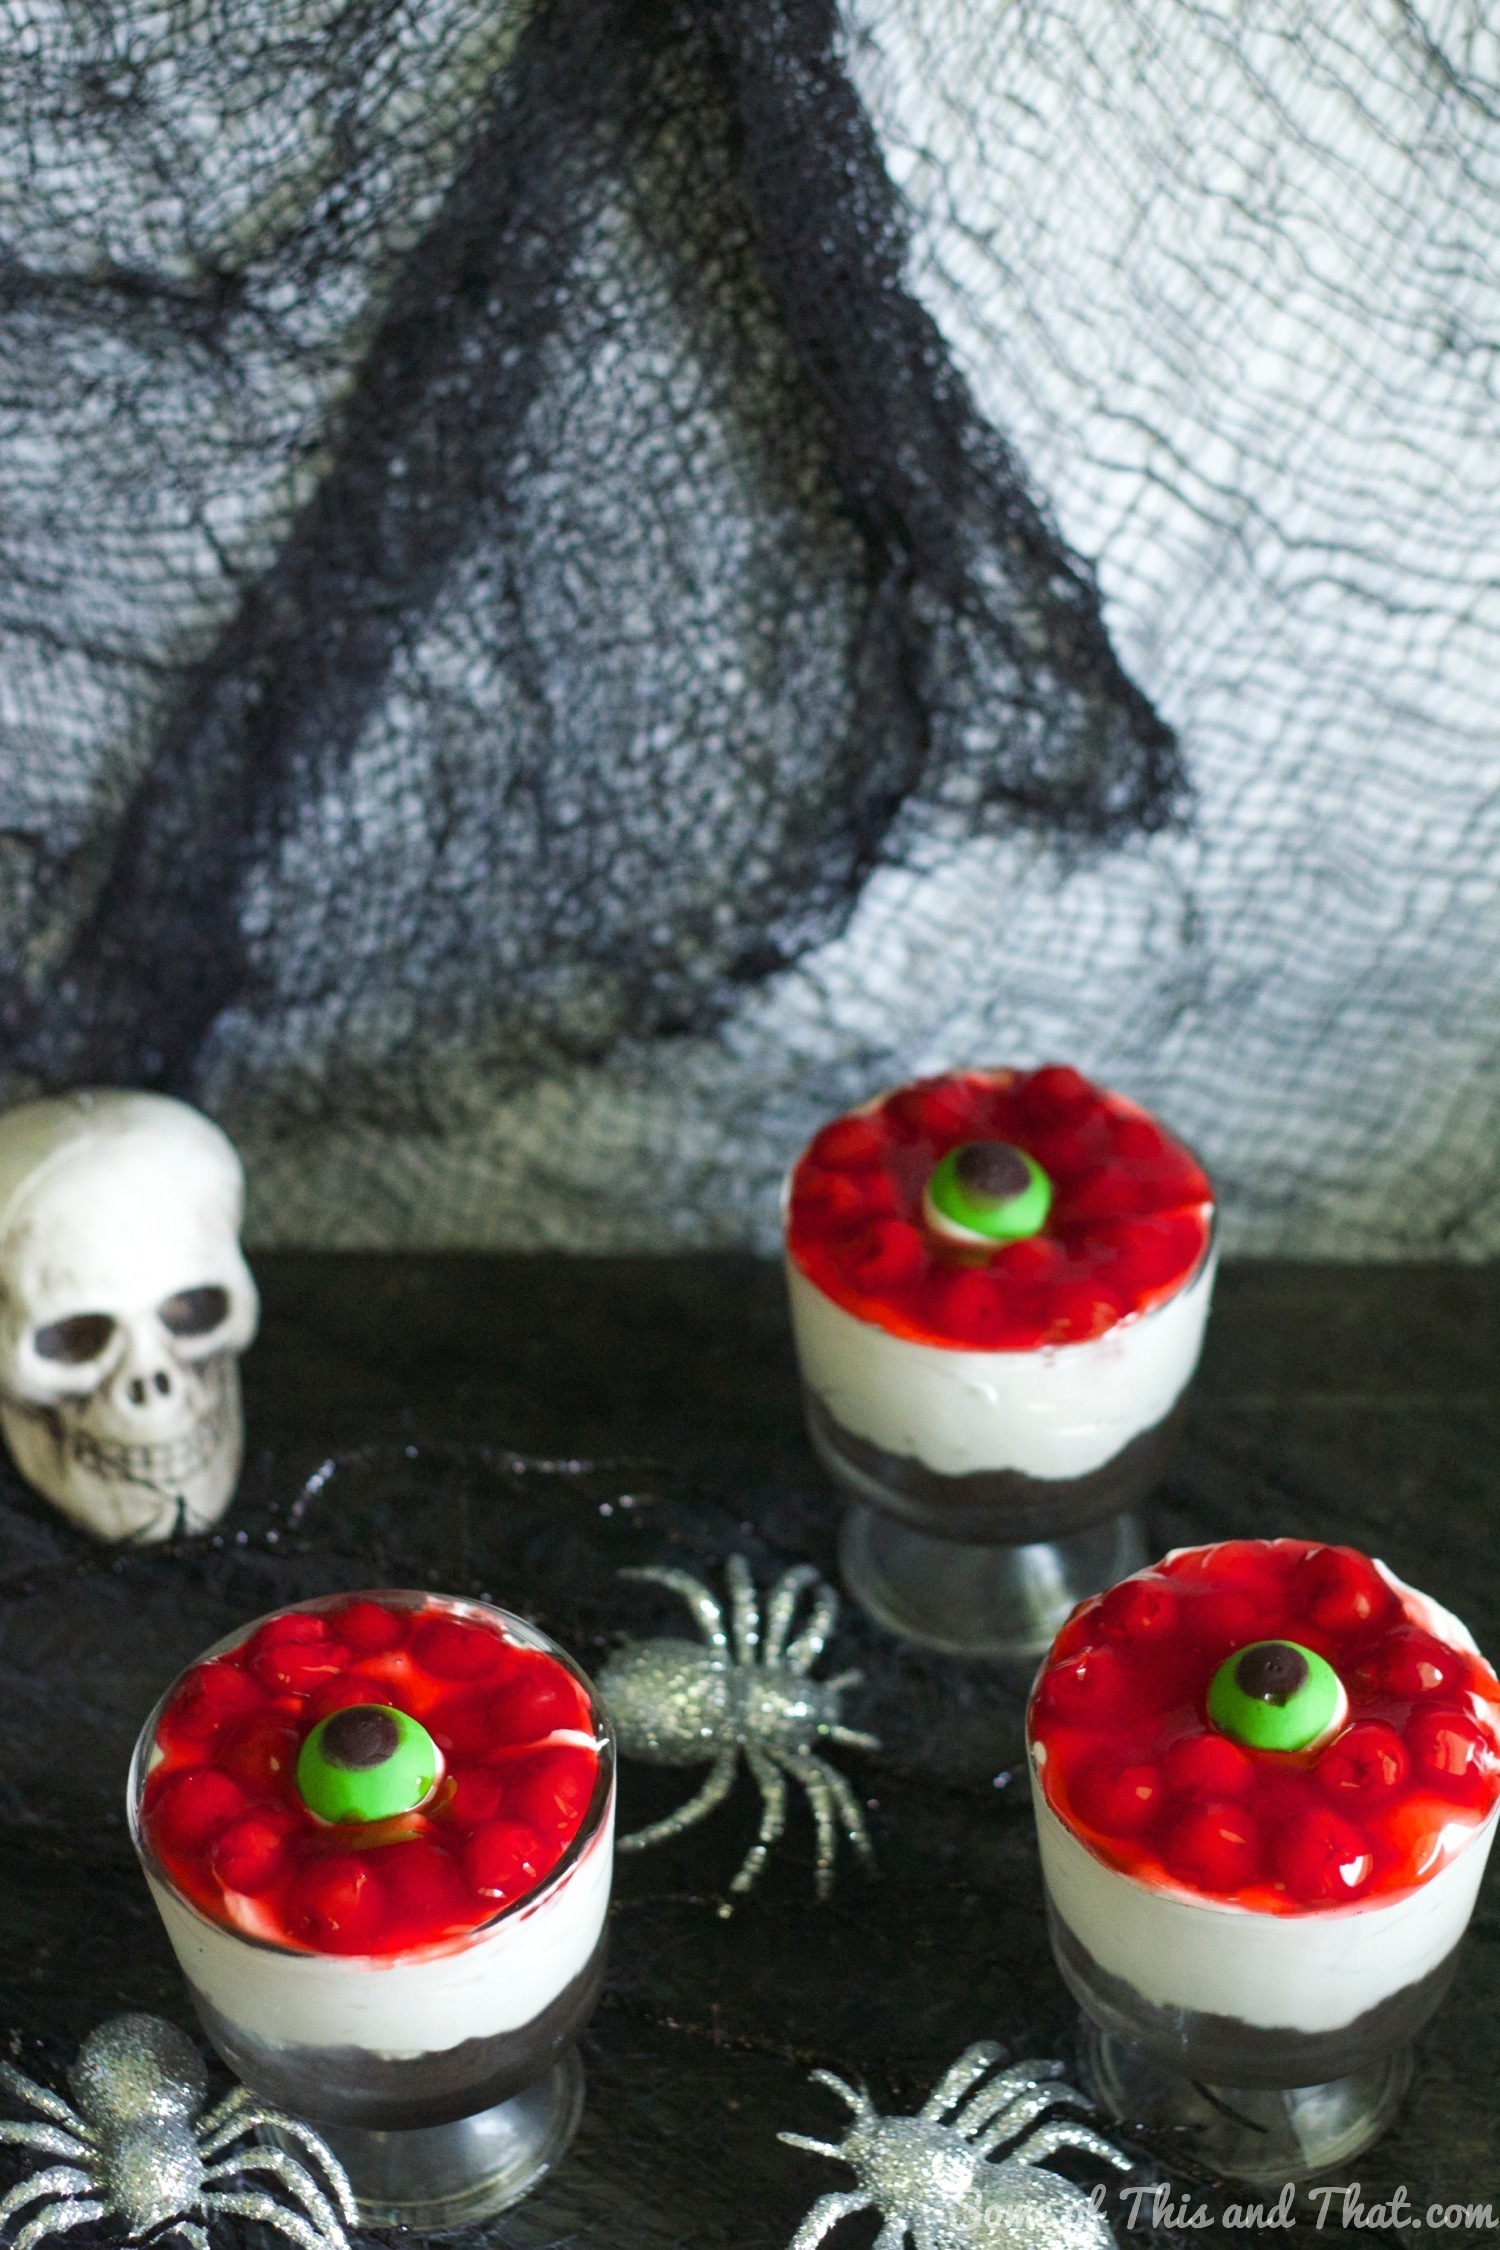 Eyeball Halloween Cheesecake! No Bake Halloween Treat from Some of This and That